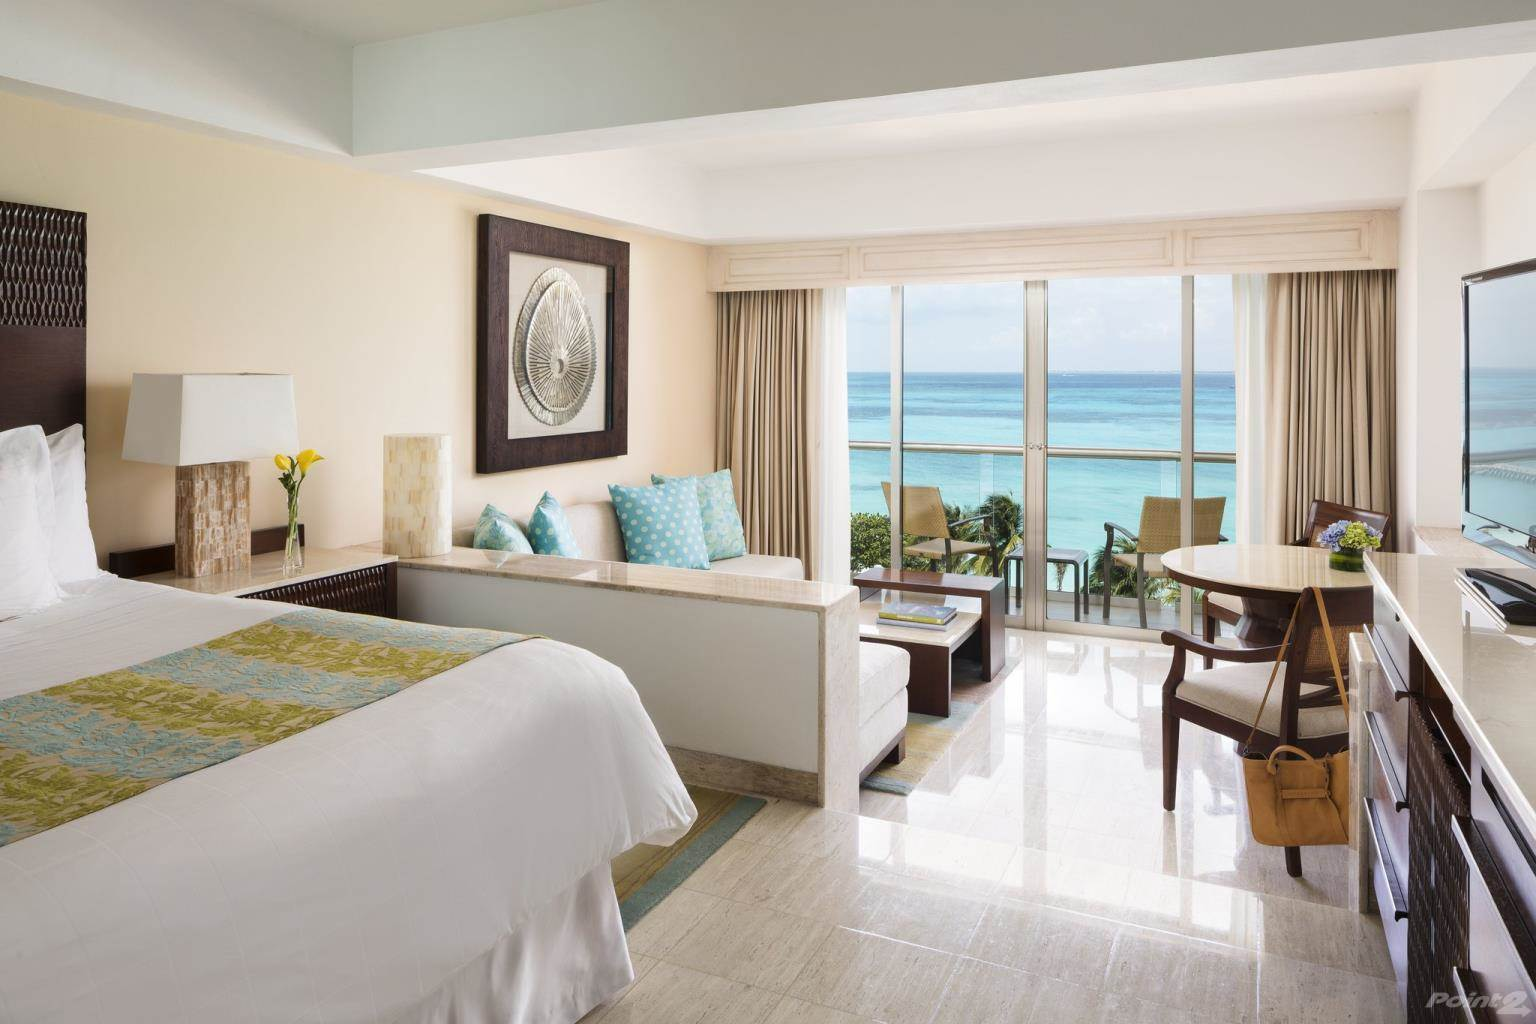 Acquisto commerciale in Hotel 37 Cancun, Cancun Hotel Zone, Quintana Roo ,77710  , Messico